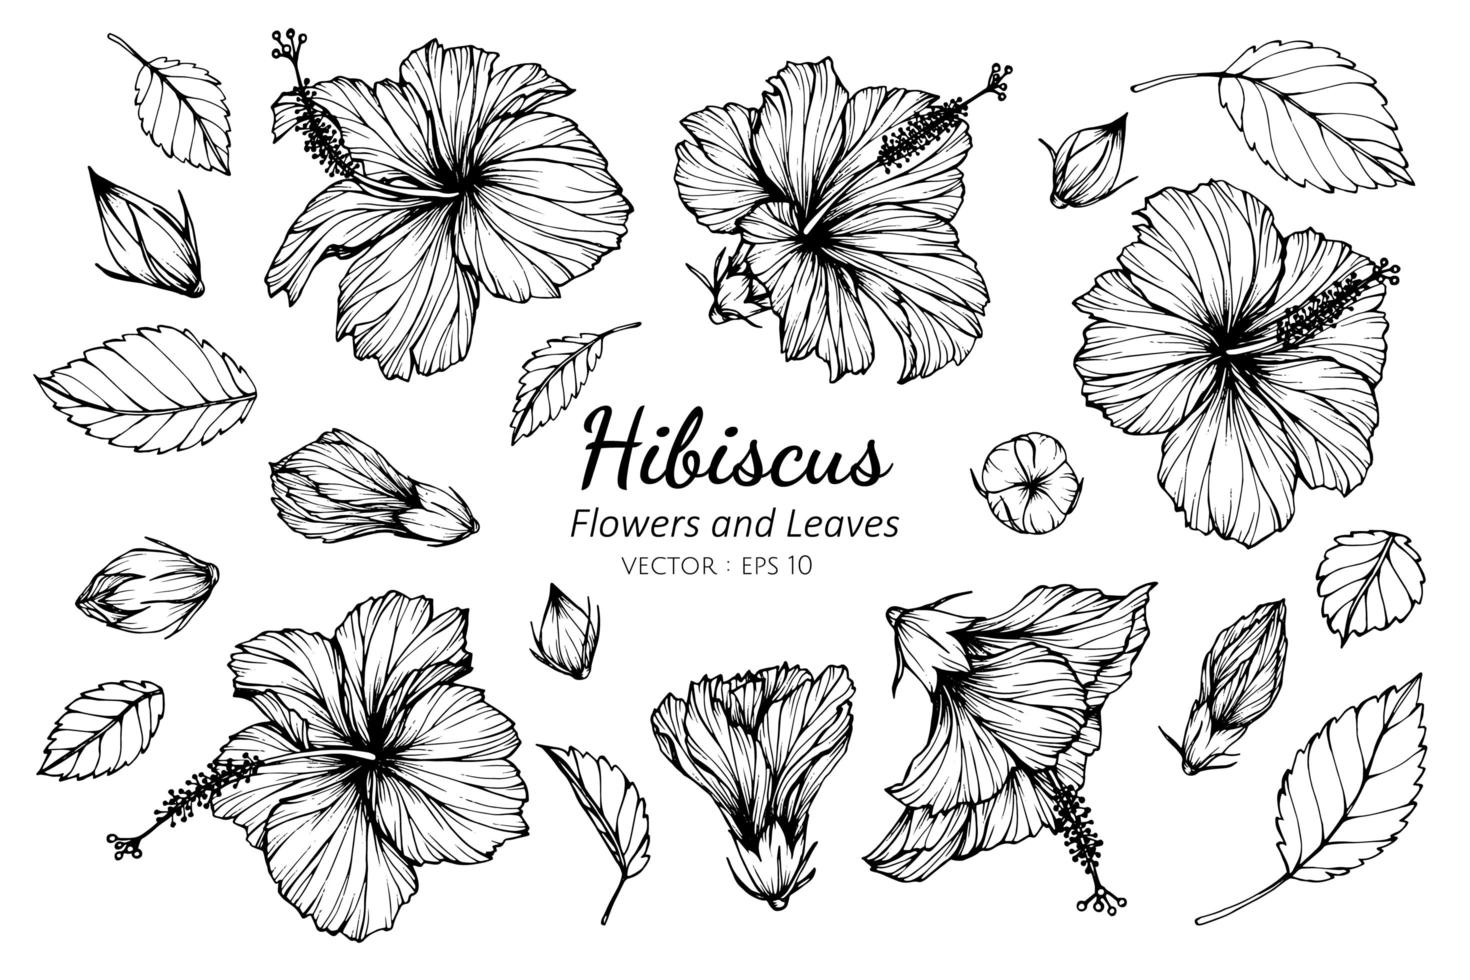 Collection of Hibiscus flowers and leaves vector